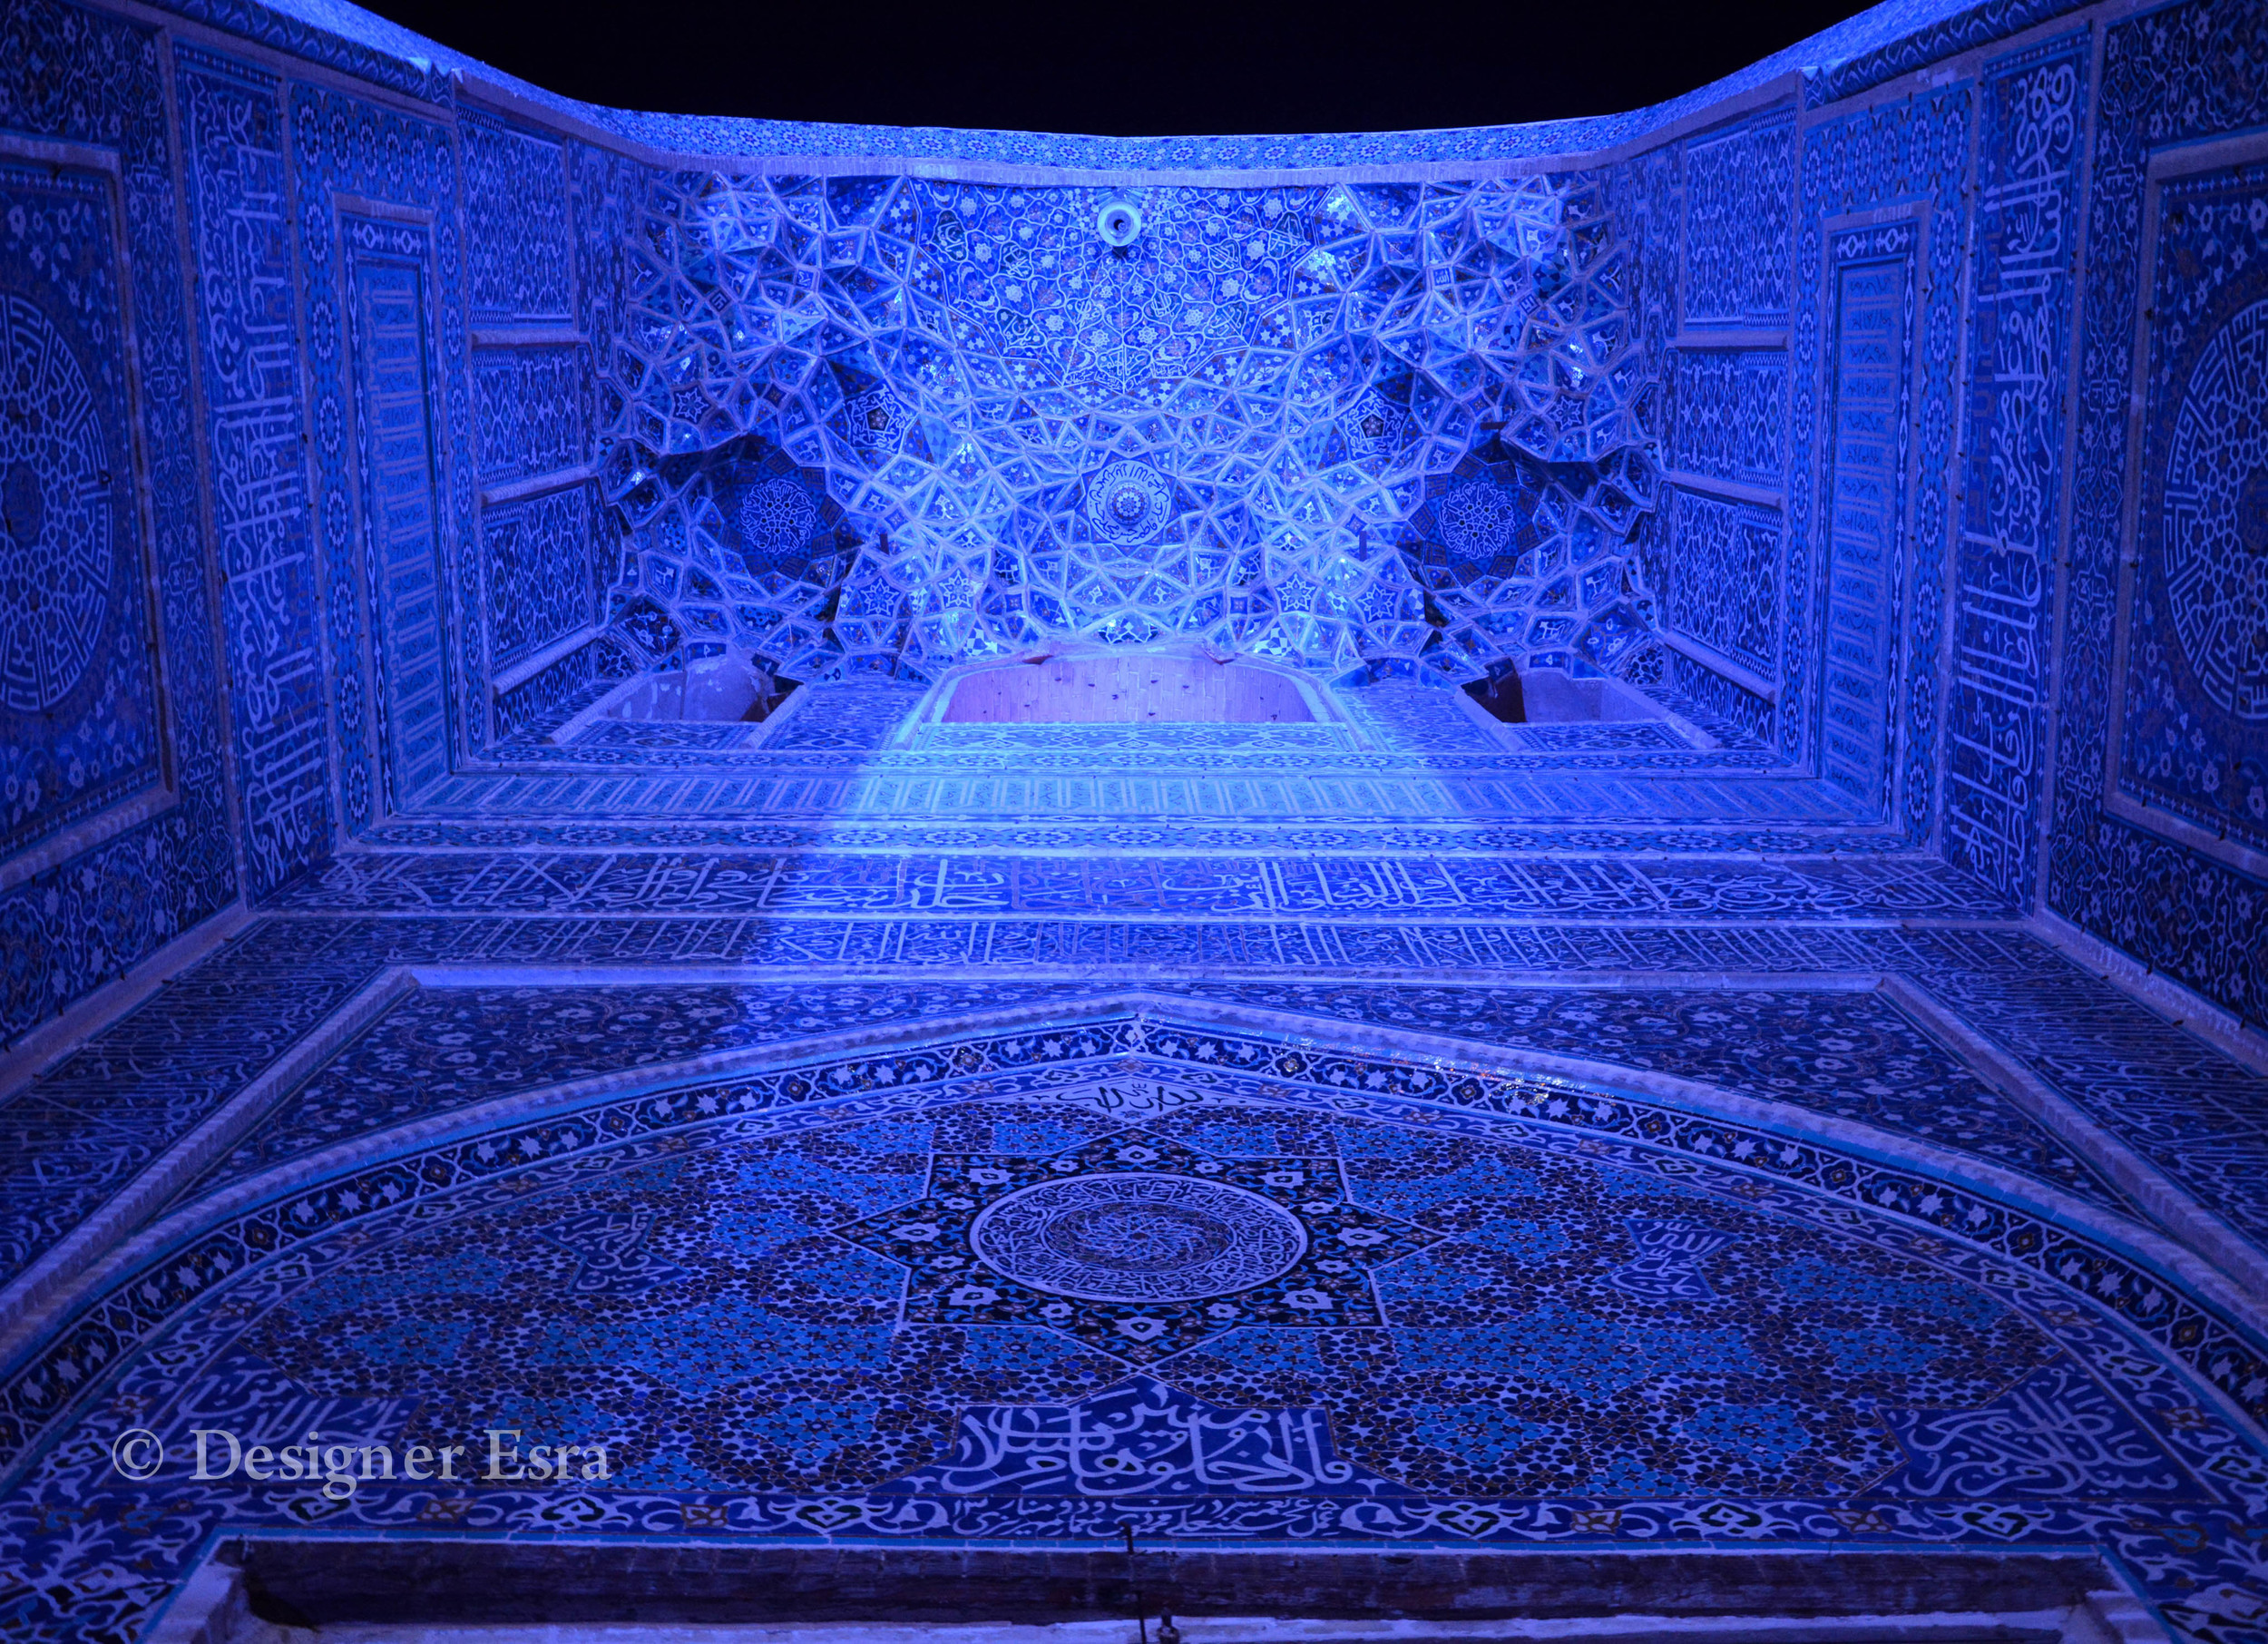 Jame'a / Friday Mosque in Yazd, Iran at night